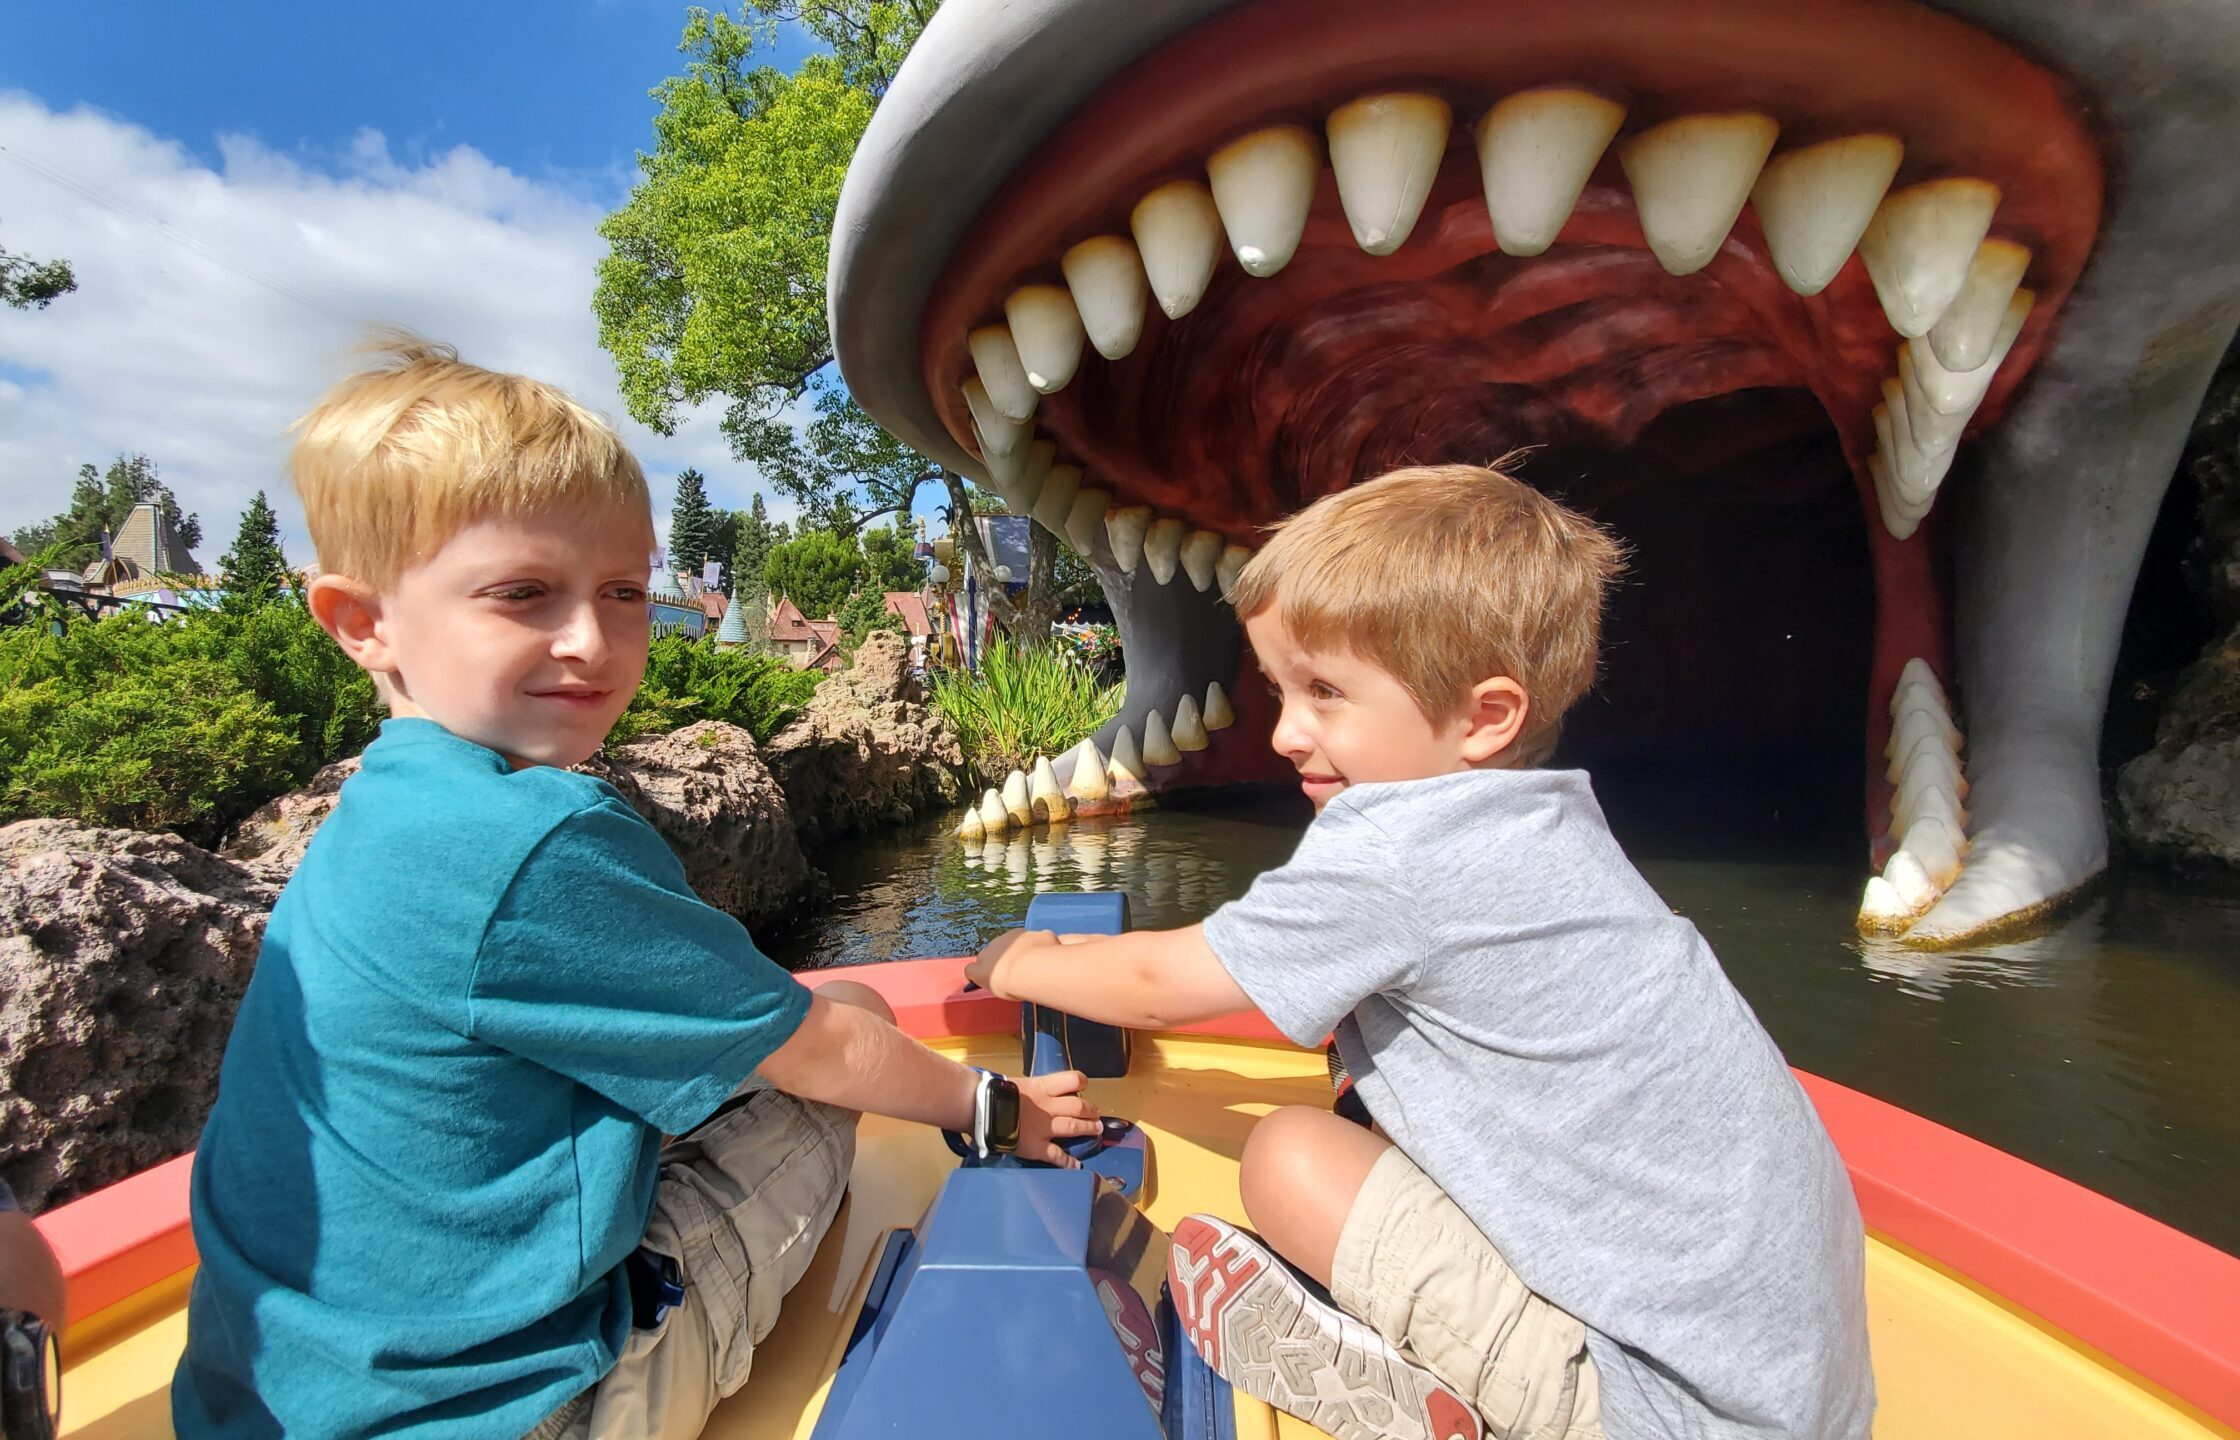 Two young children riding on the front of a Storybook Canal Boat about to enter the whale's mouth.